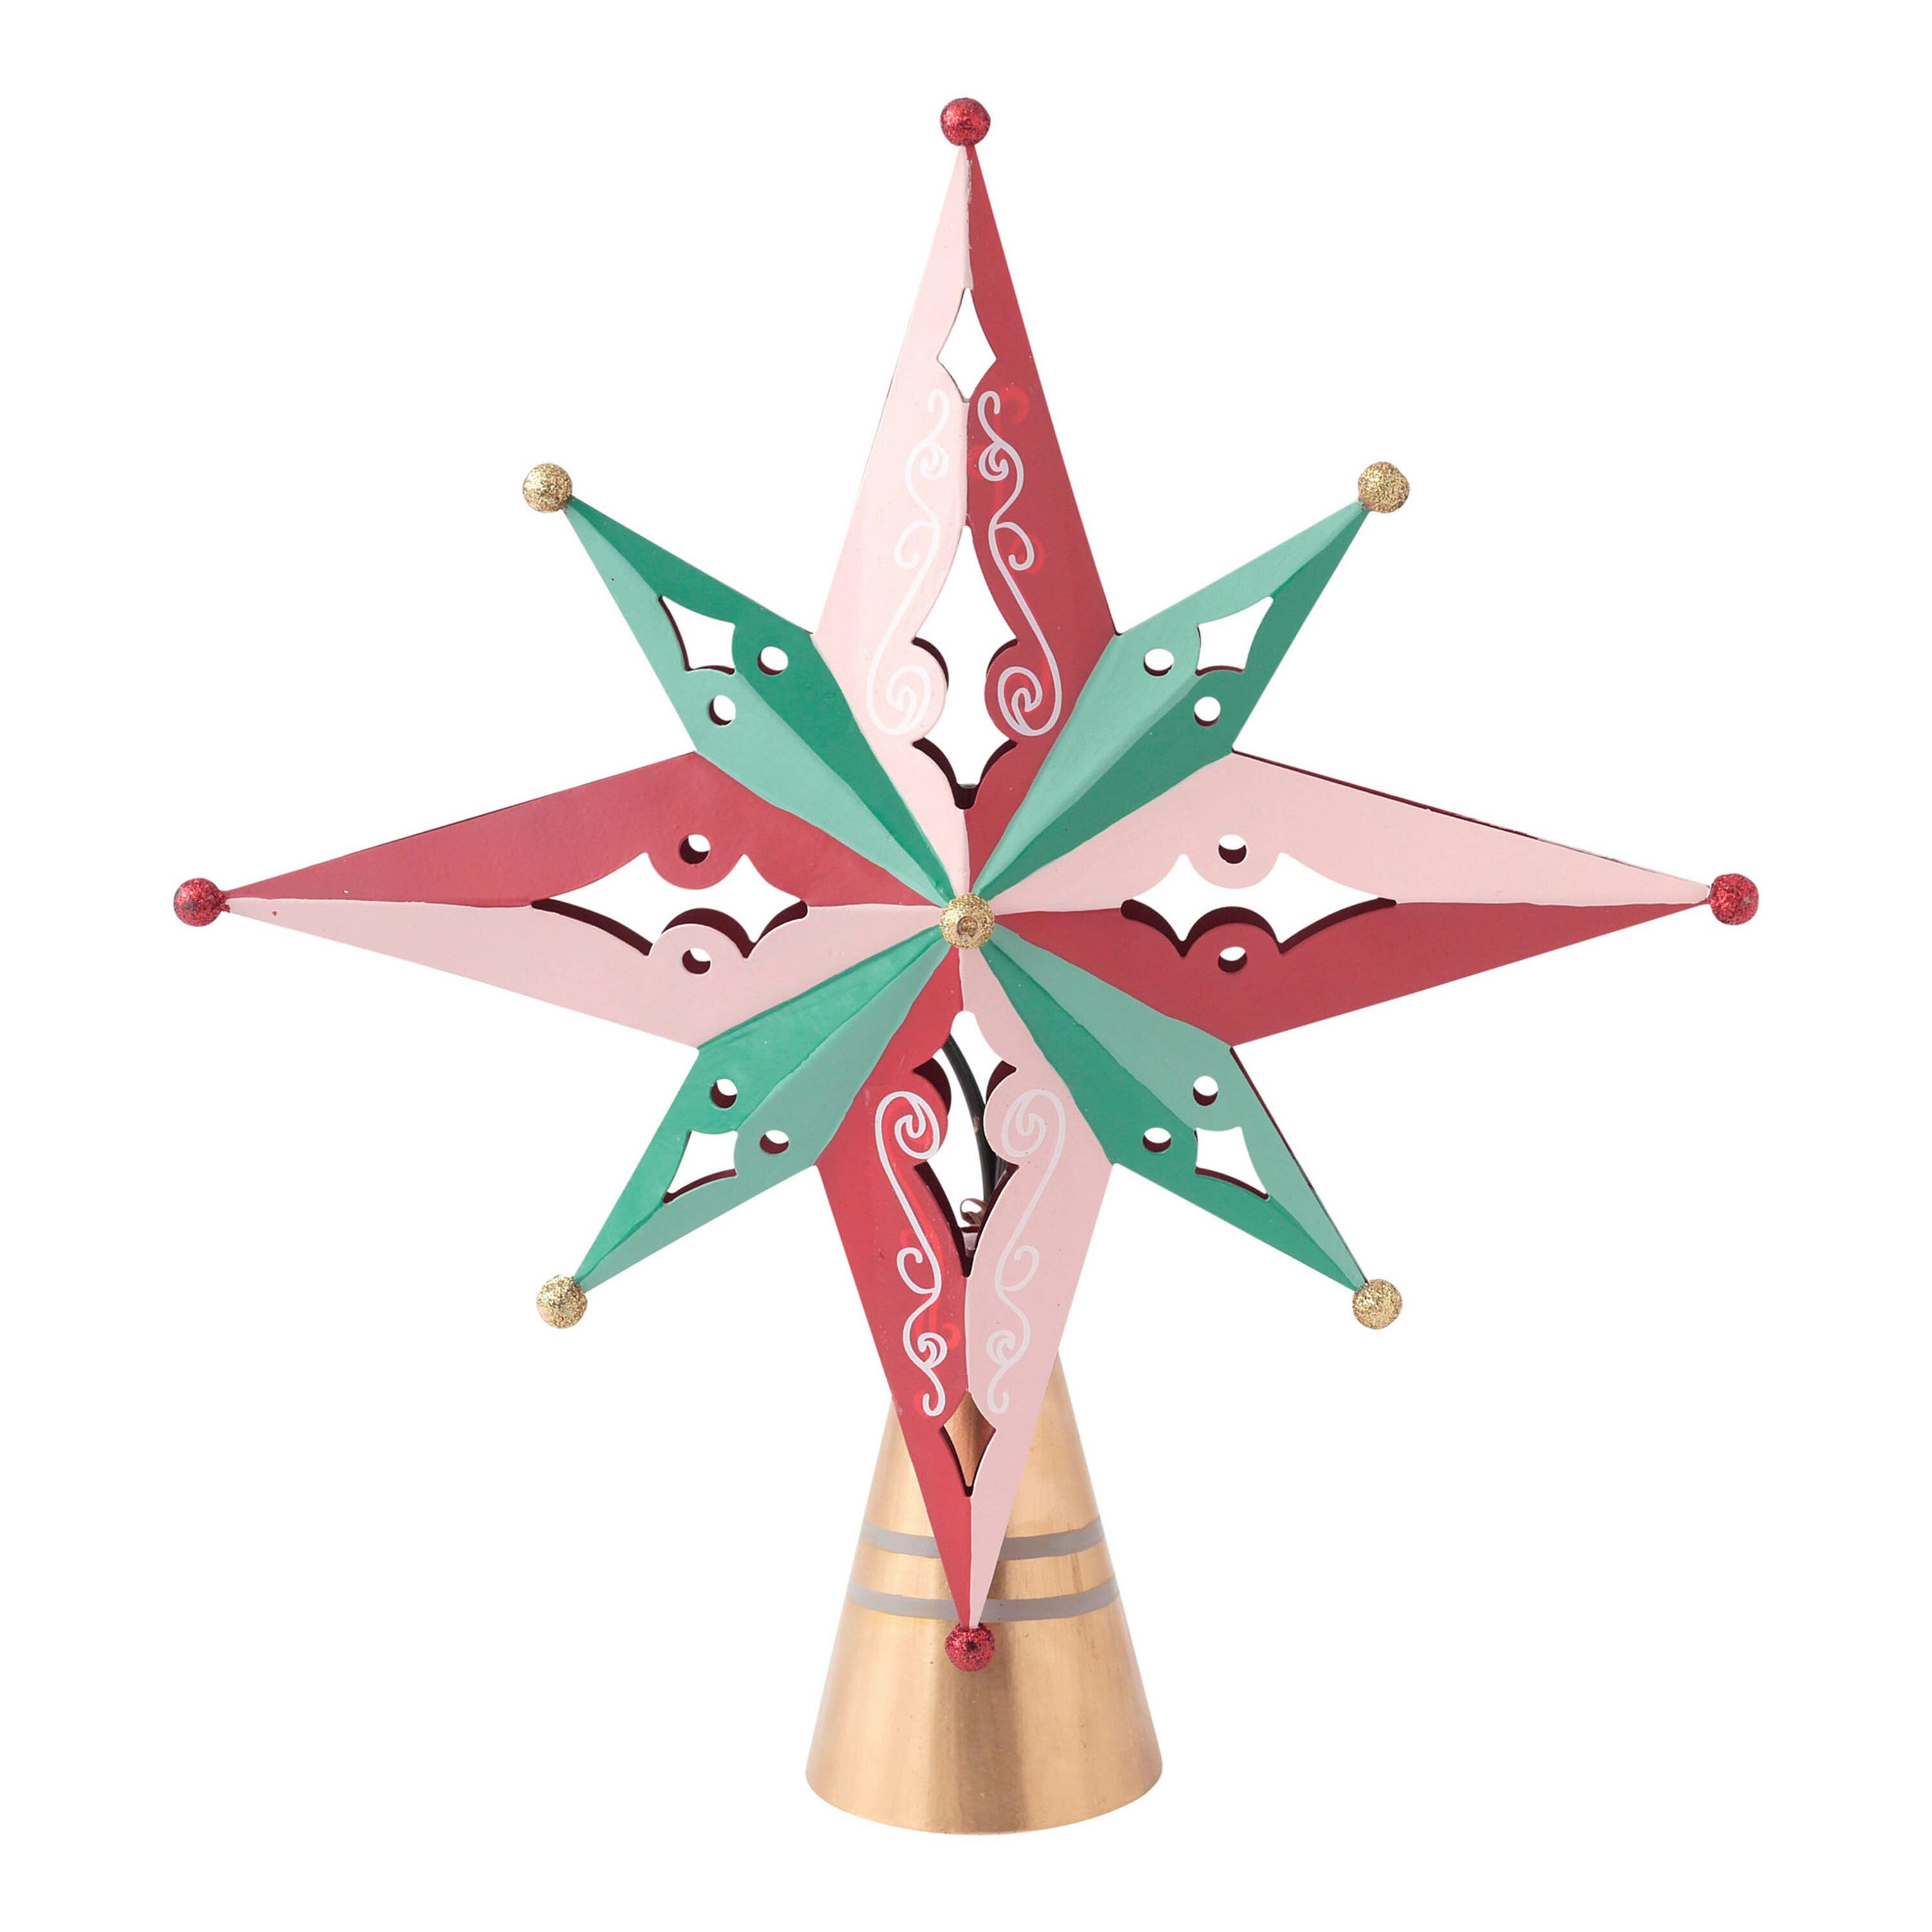 Hallmark Home Amp Gifts Vintage Inspired Holiday Star Tree